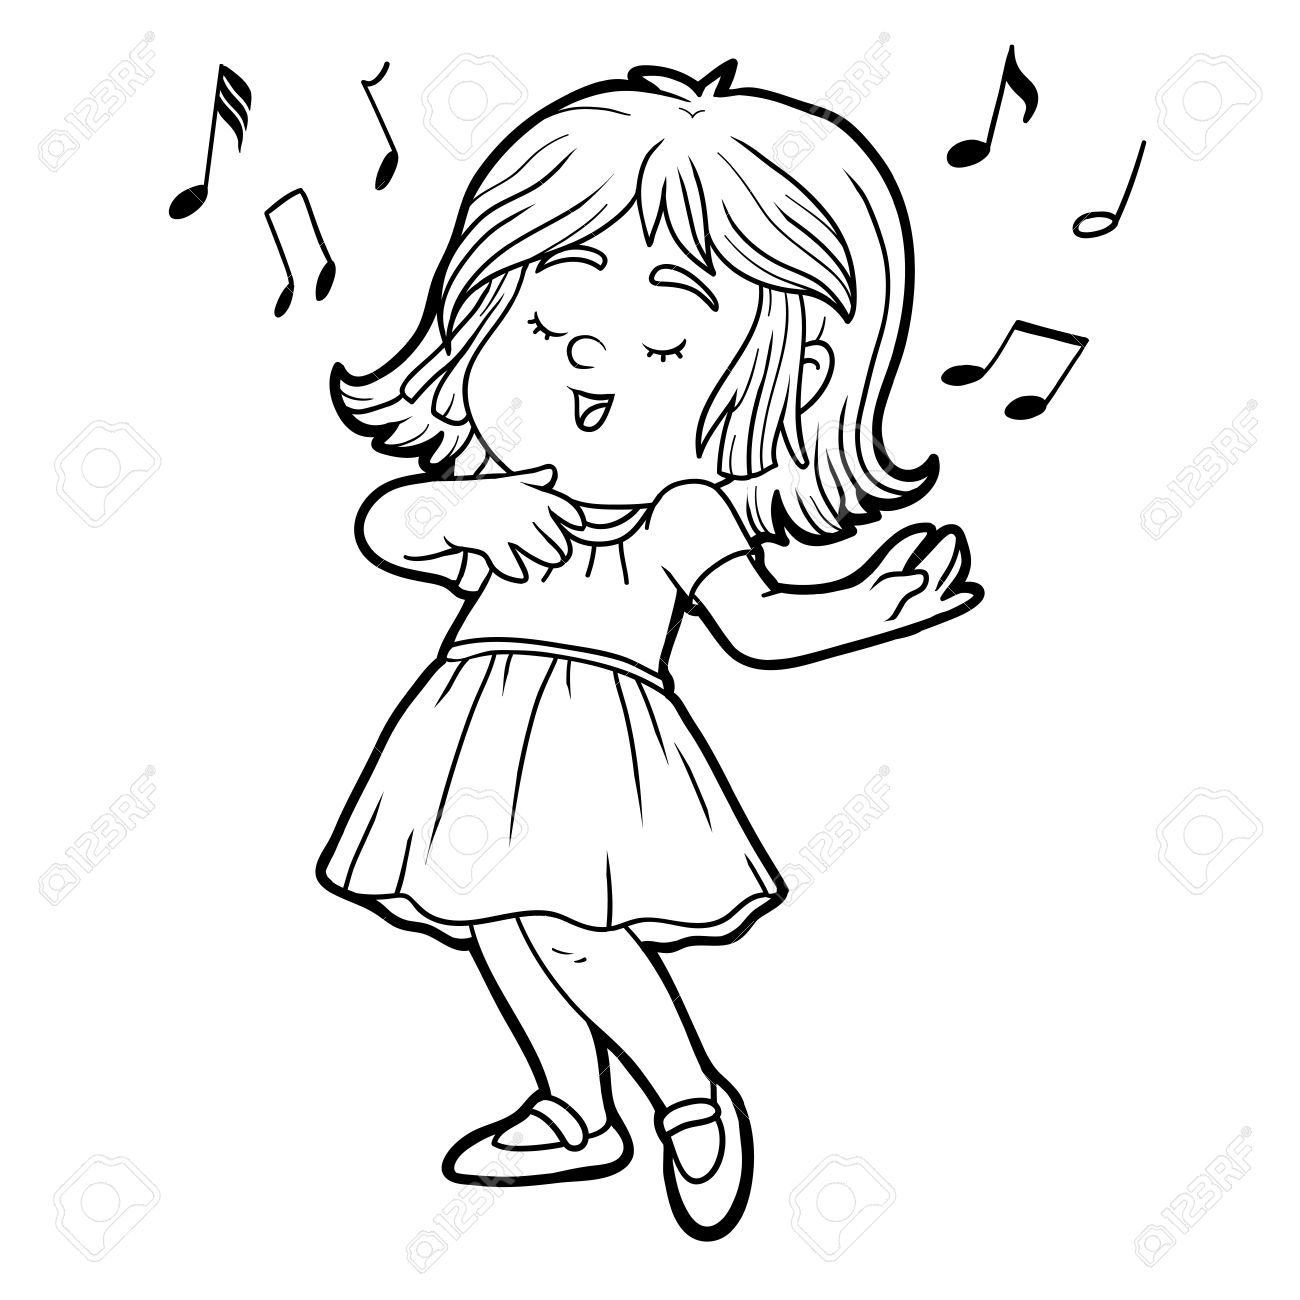 Girl Singing Clipart Black And White.